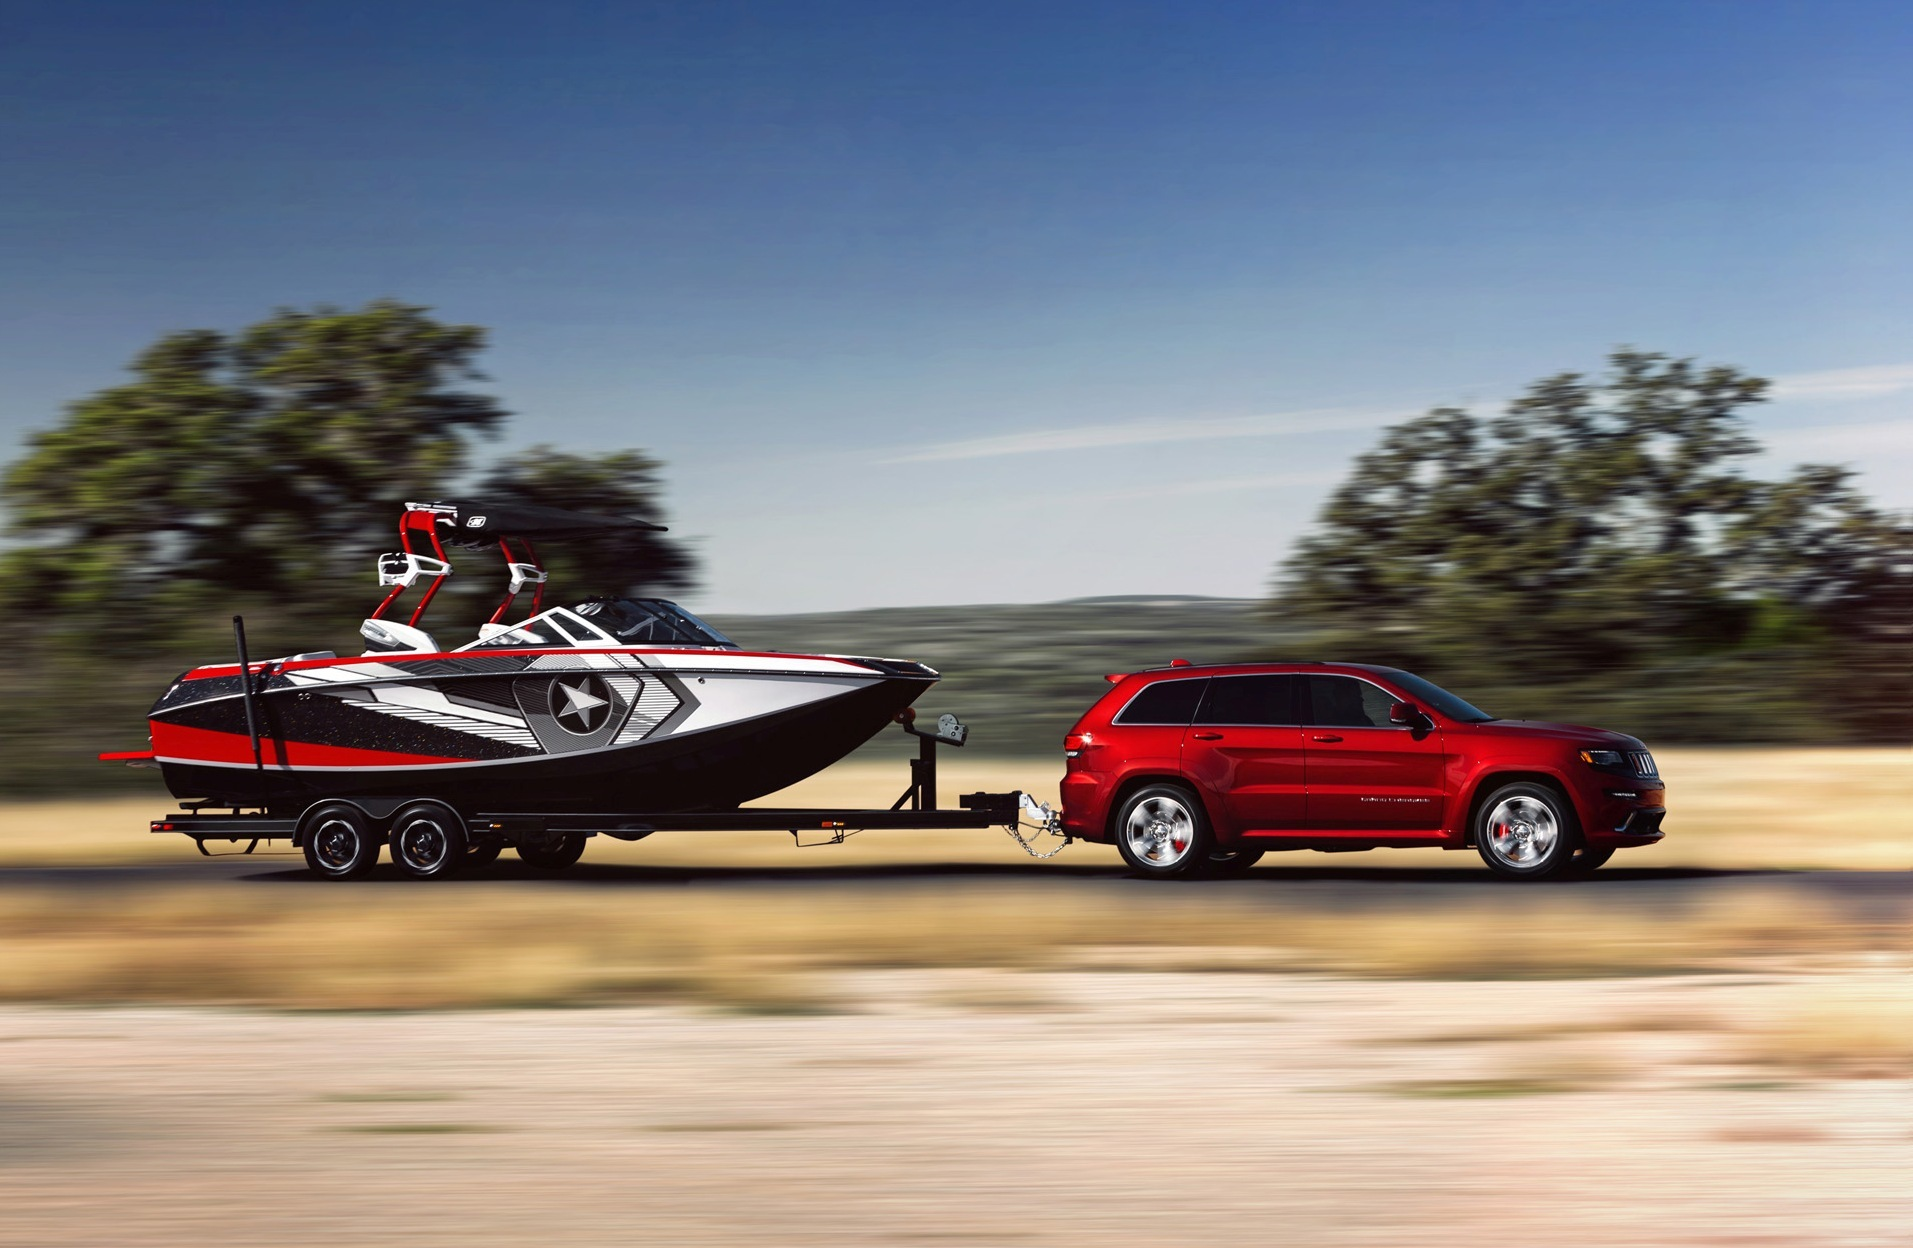 best-cars-for-towing-boats-4.jpg#asset:494872